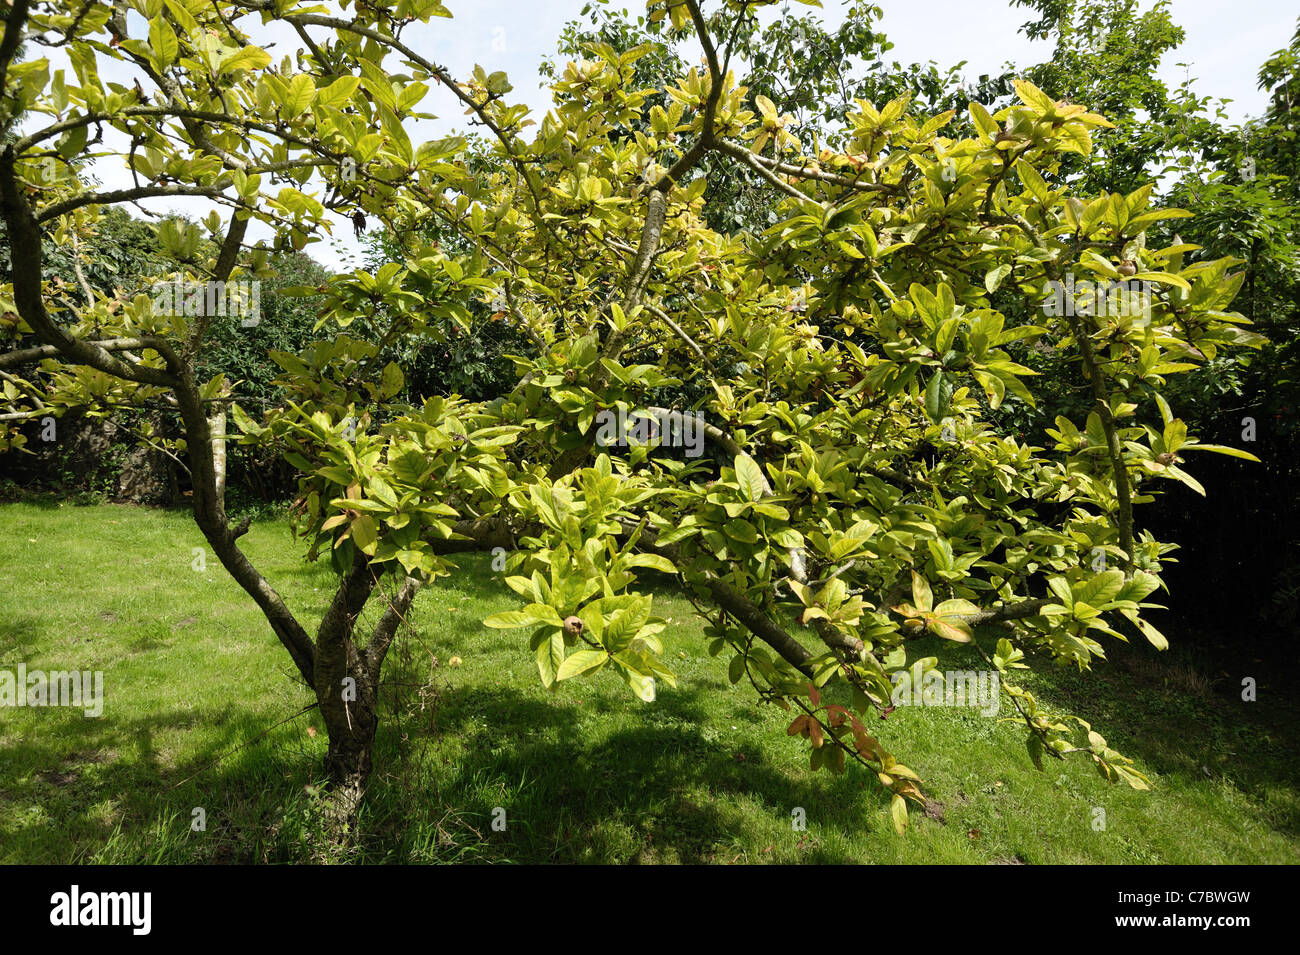 Slow decline and yellowing of an established medlar tree - cause is not known - Stock Image